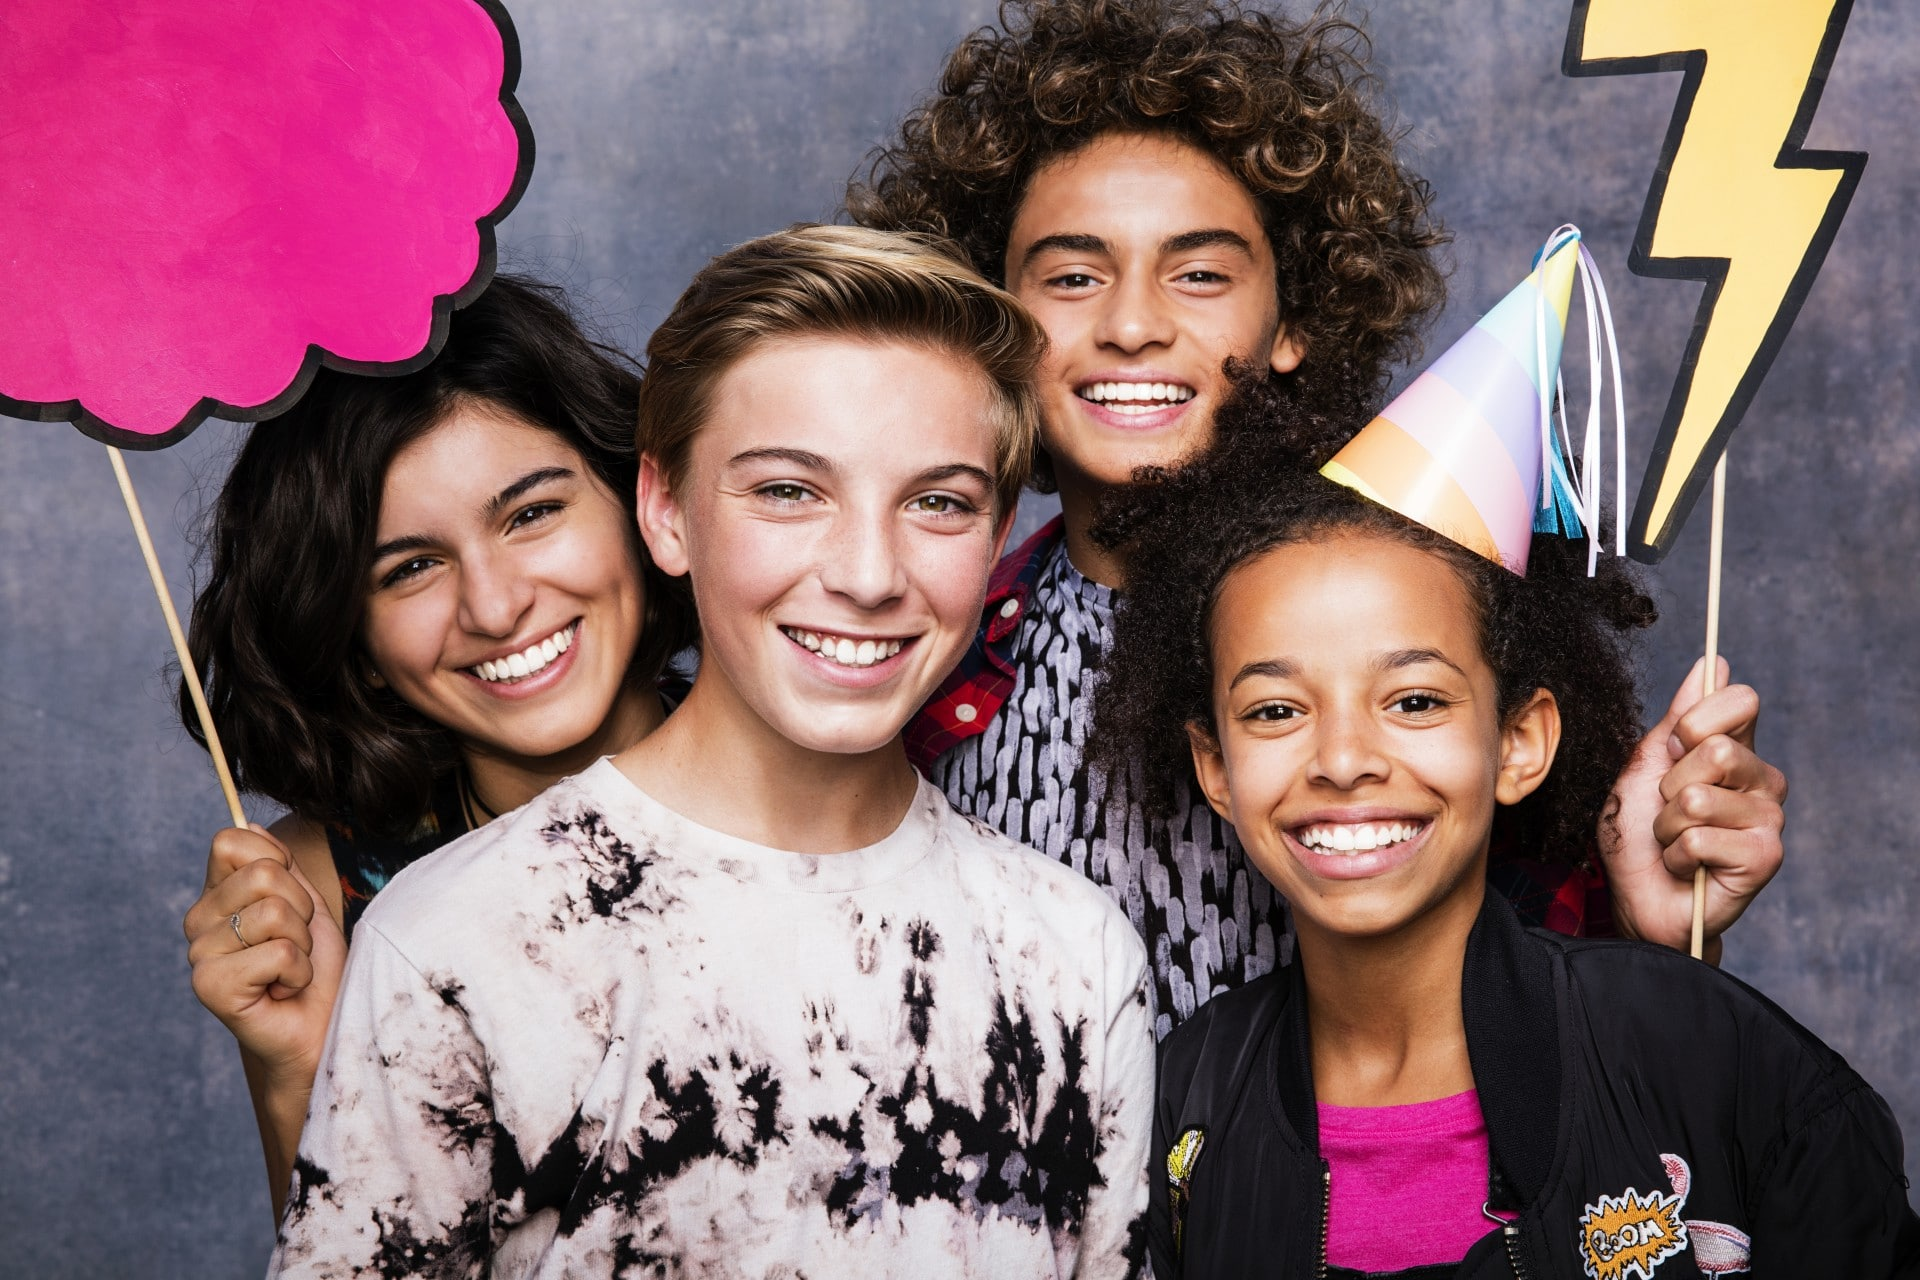 Group photo of adolence using Invisalign for Teens